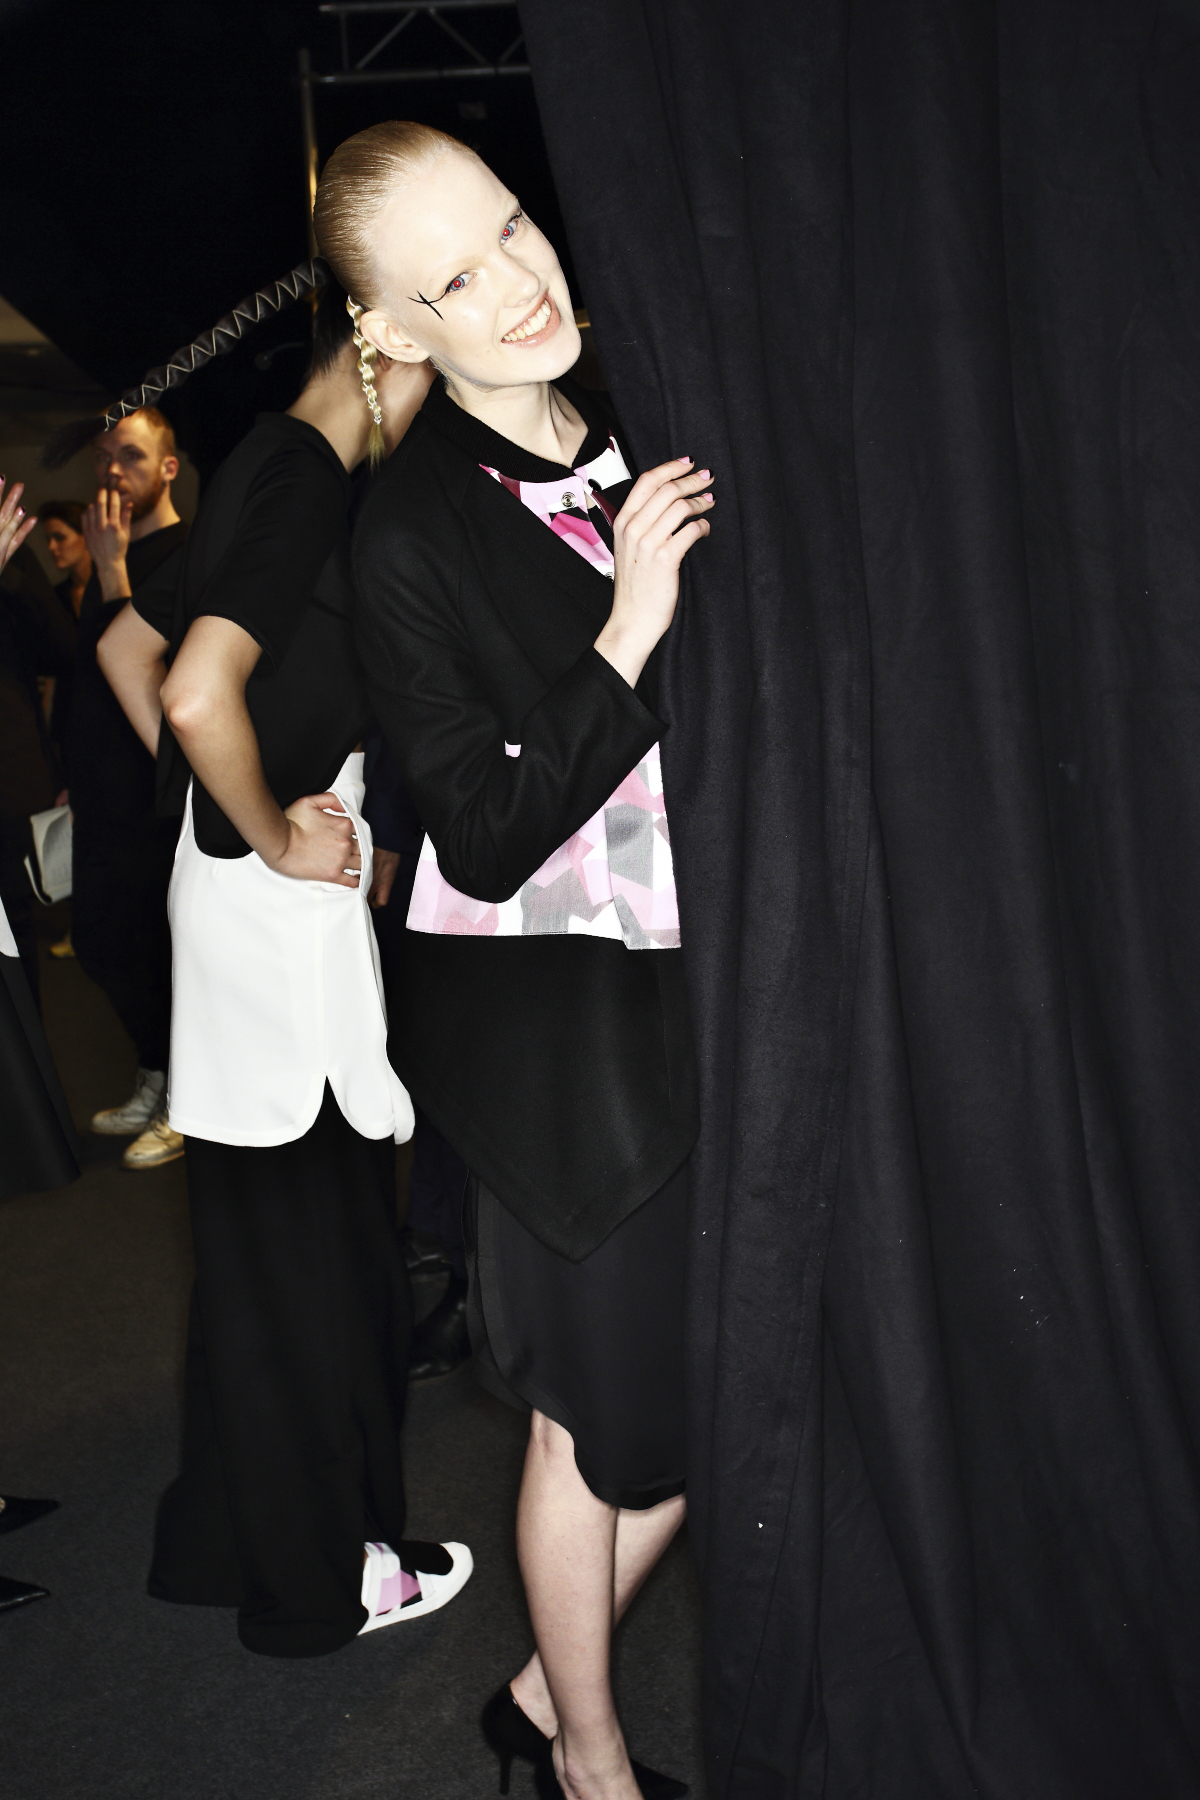 Ida Klamborn AW14-15 Fashion Show Stockholm Backstage - Her first